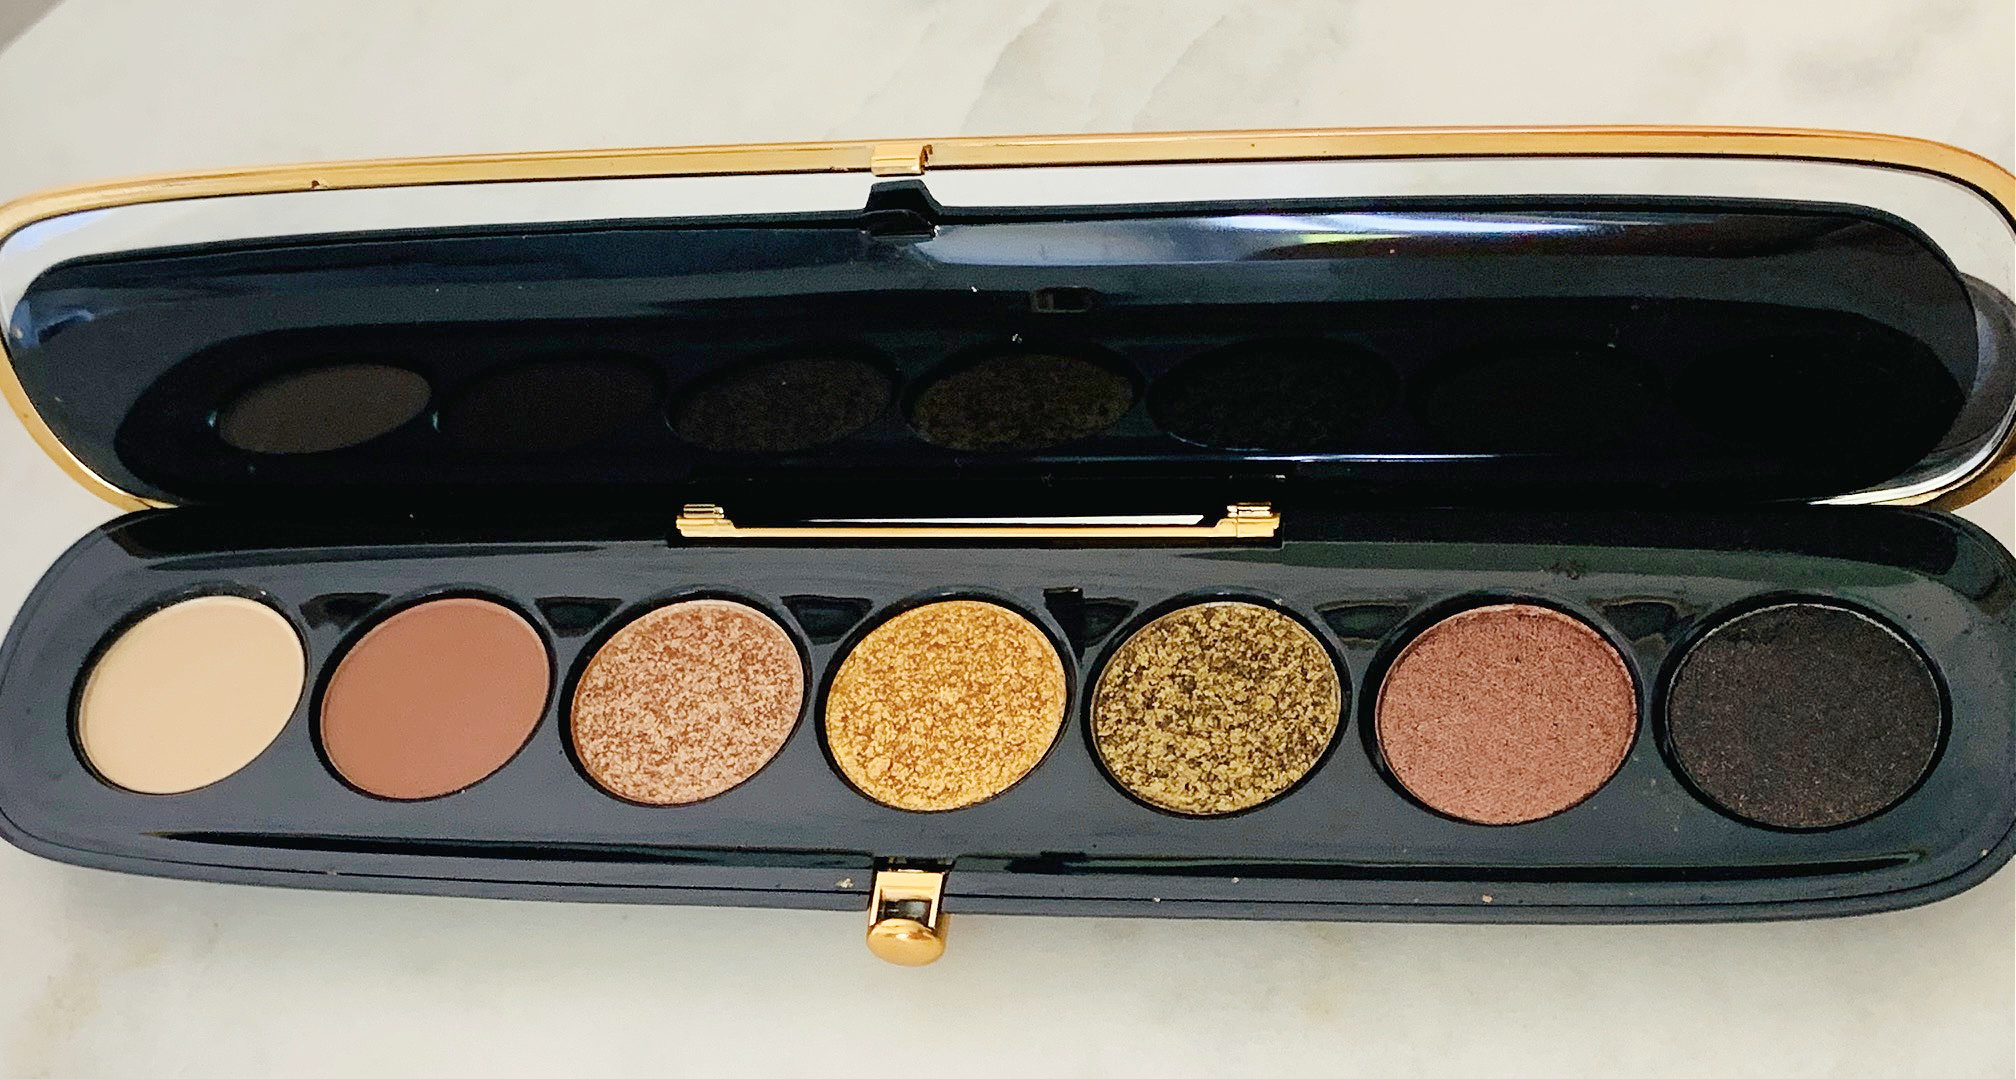 Marc Jacobs Eye-Conic Multi-Finish Eyeshadow Palette in Extravagance! Limited Gold Edition Review & Swatches